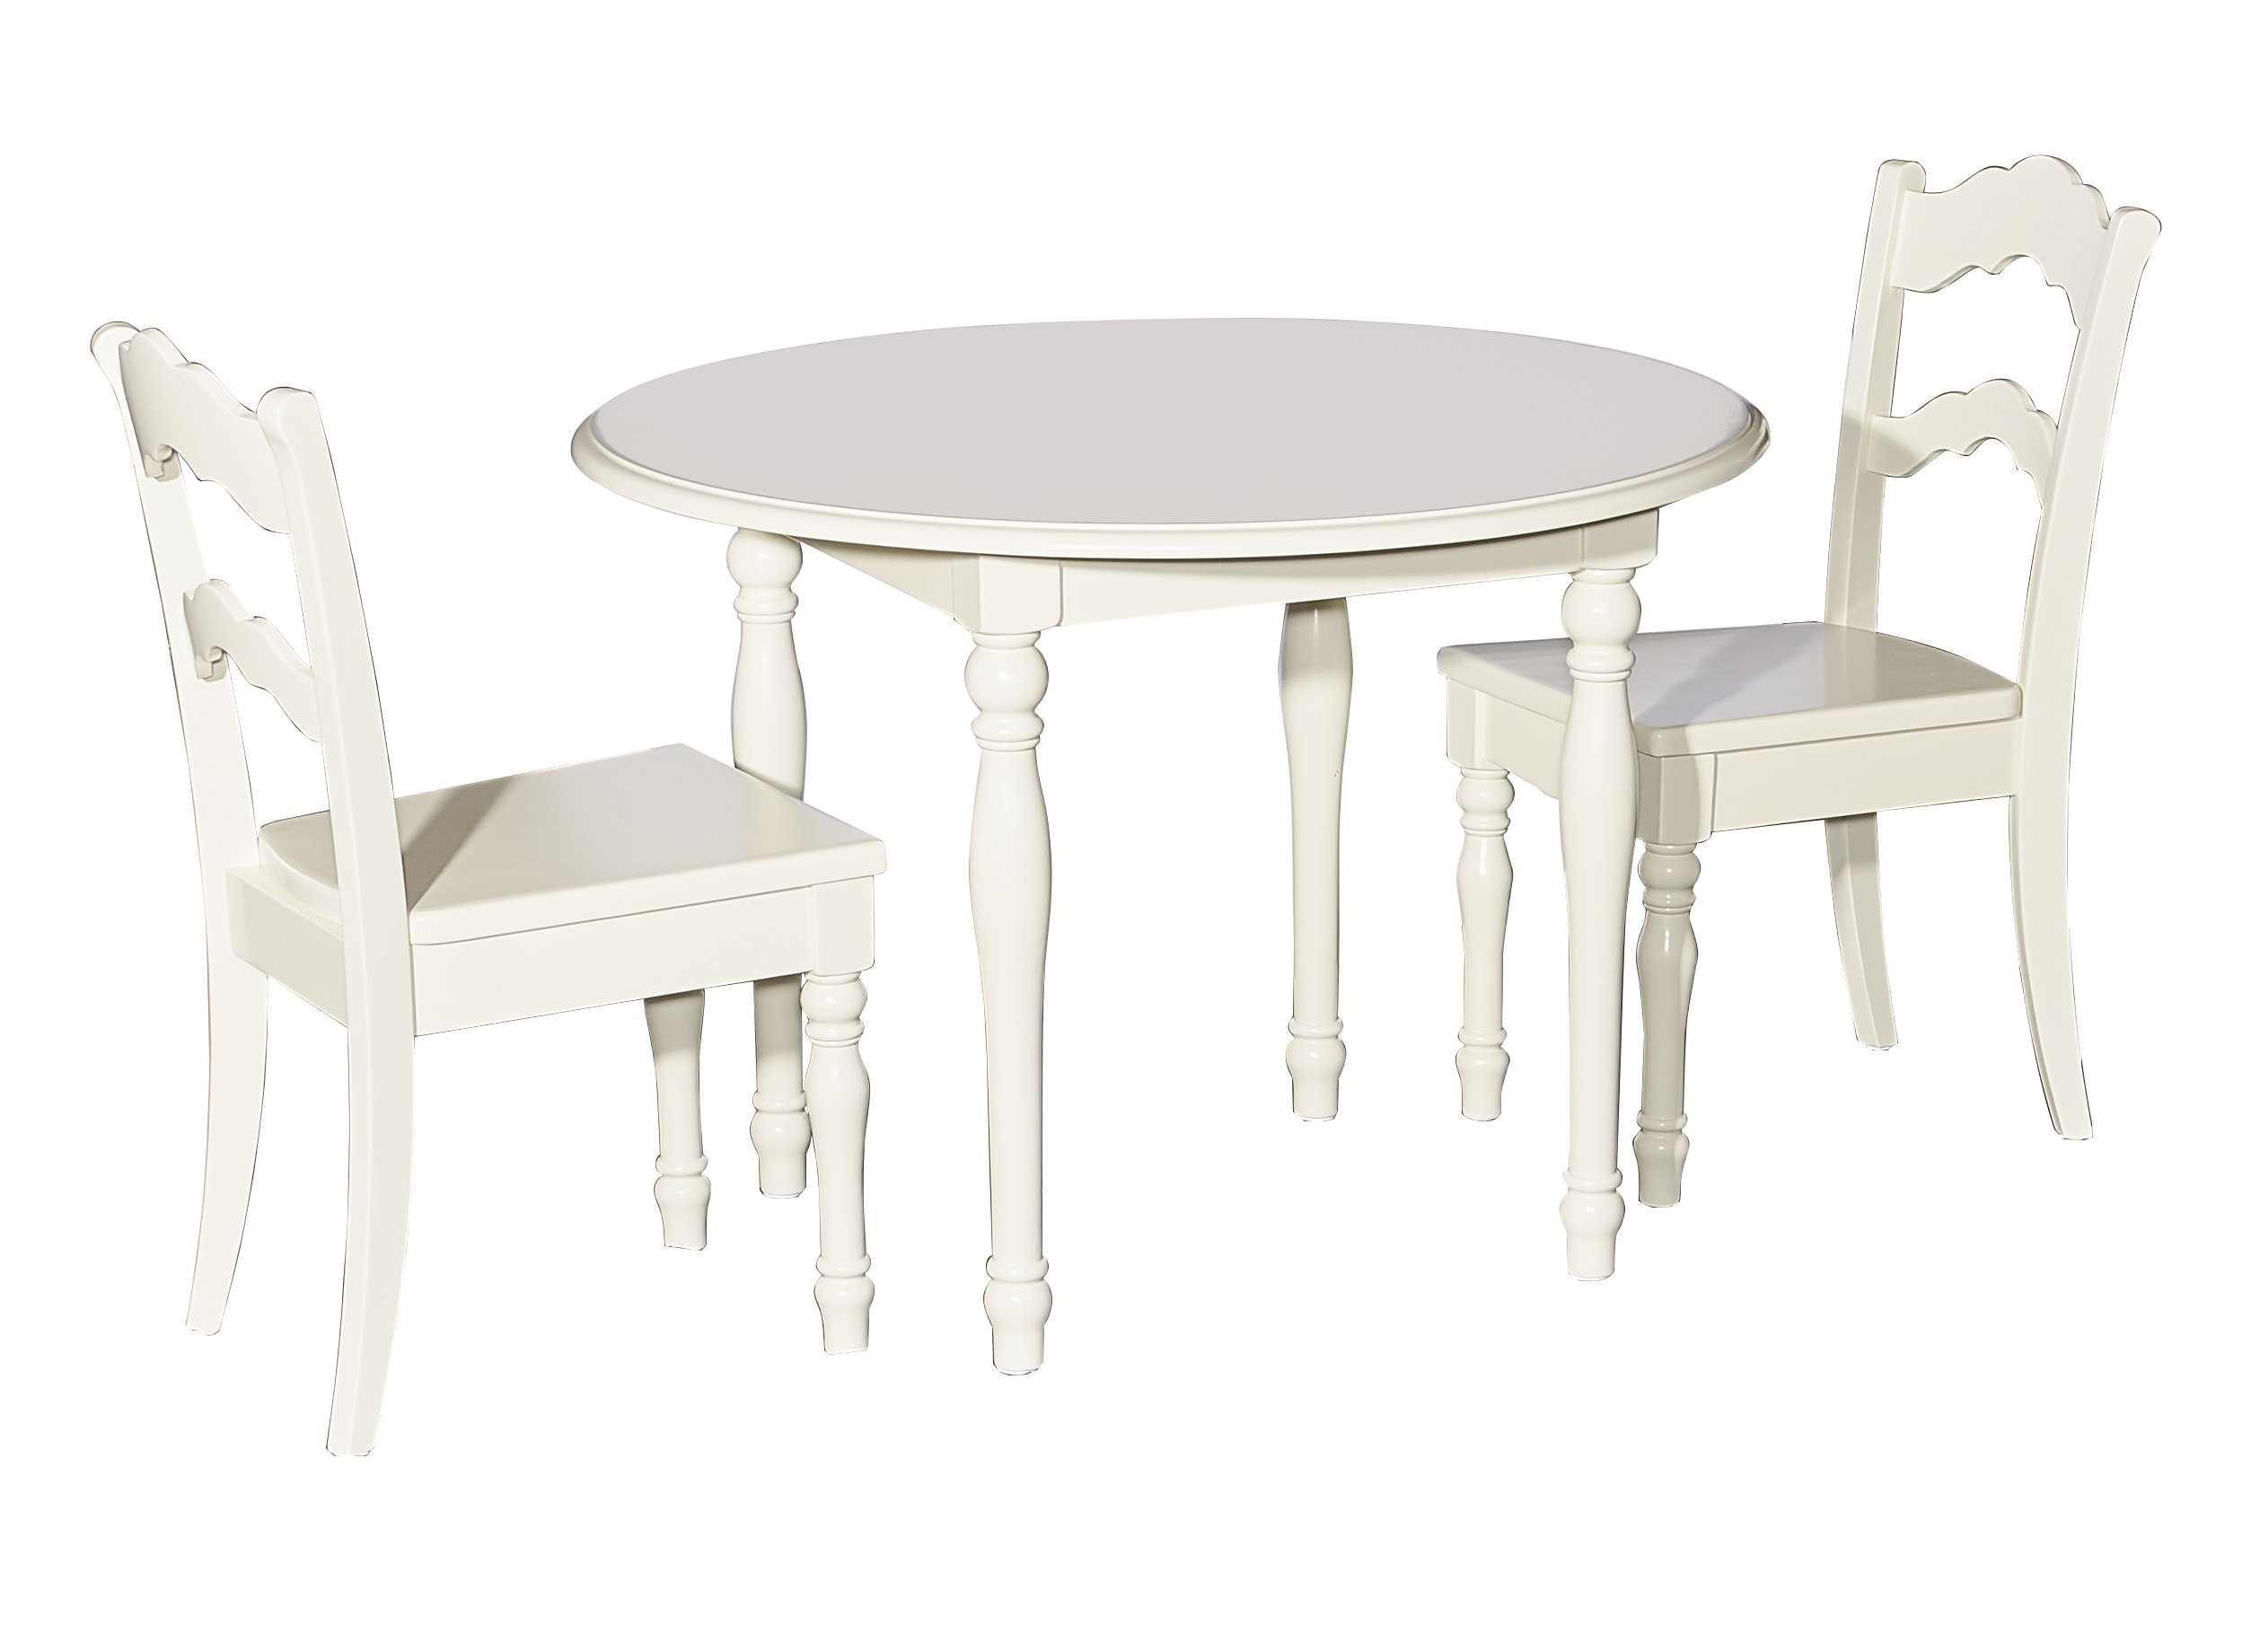 Powell's Furniture 16Y1004 Table and 2 Chairs, Cream Youth, by Powell's Furniture